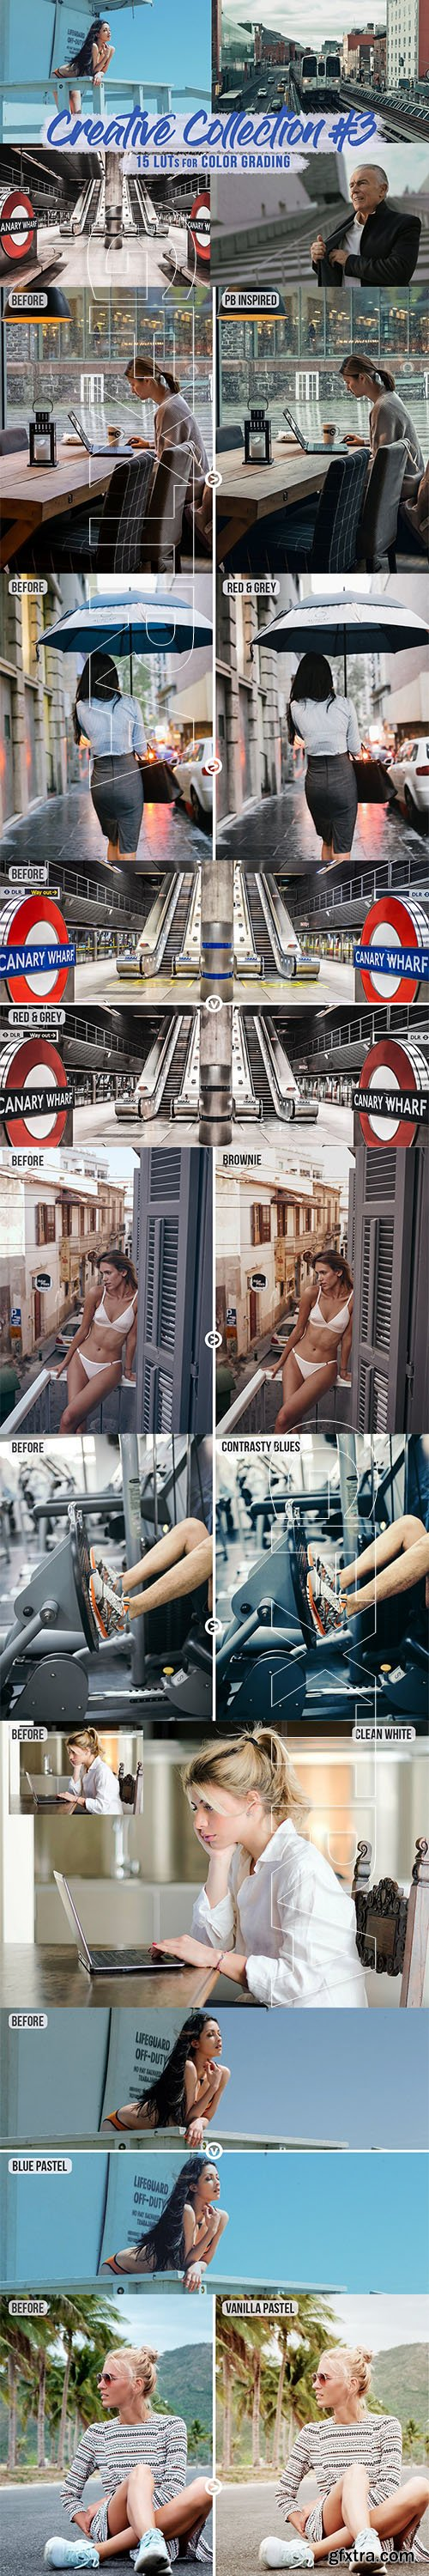 CreativeMarket - Creative Pack#3 - 15 LUTs/Filters 5815910